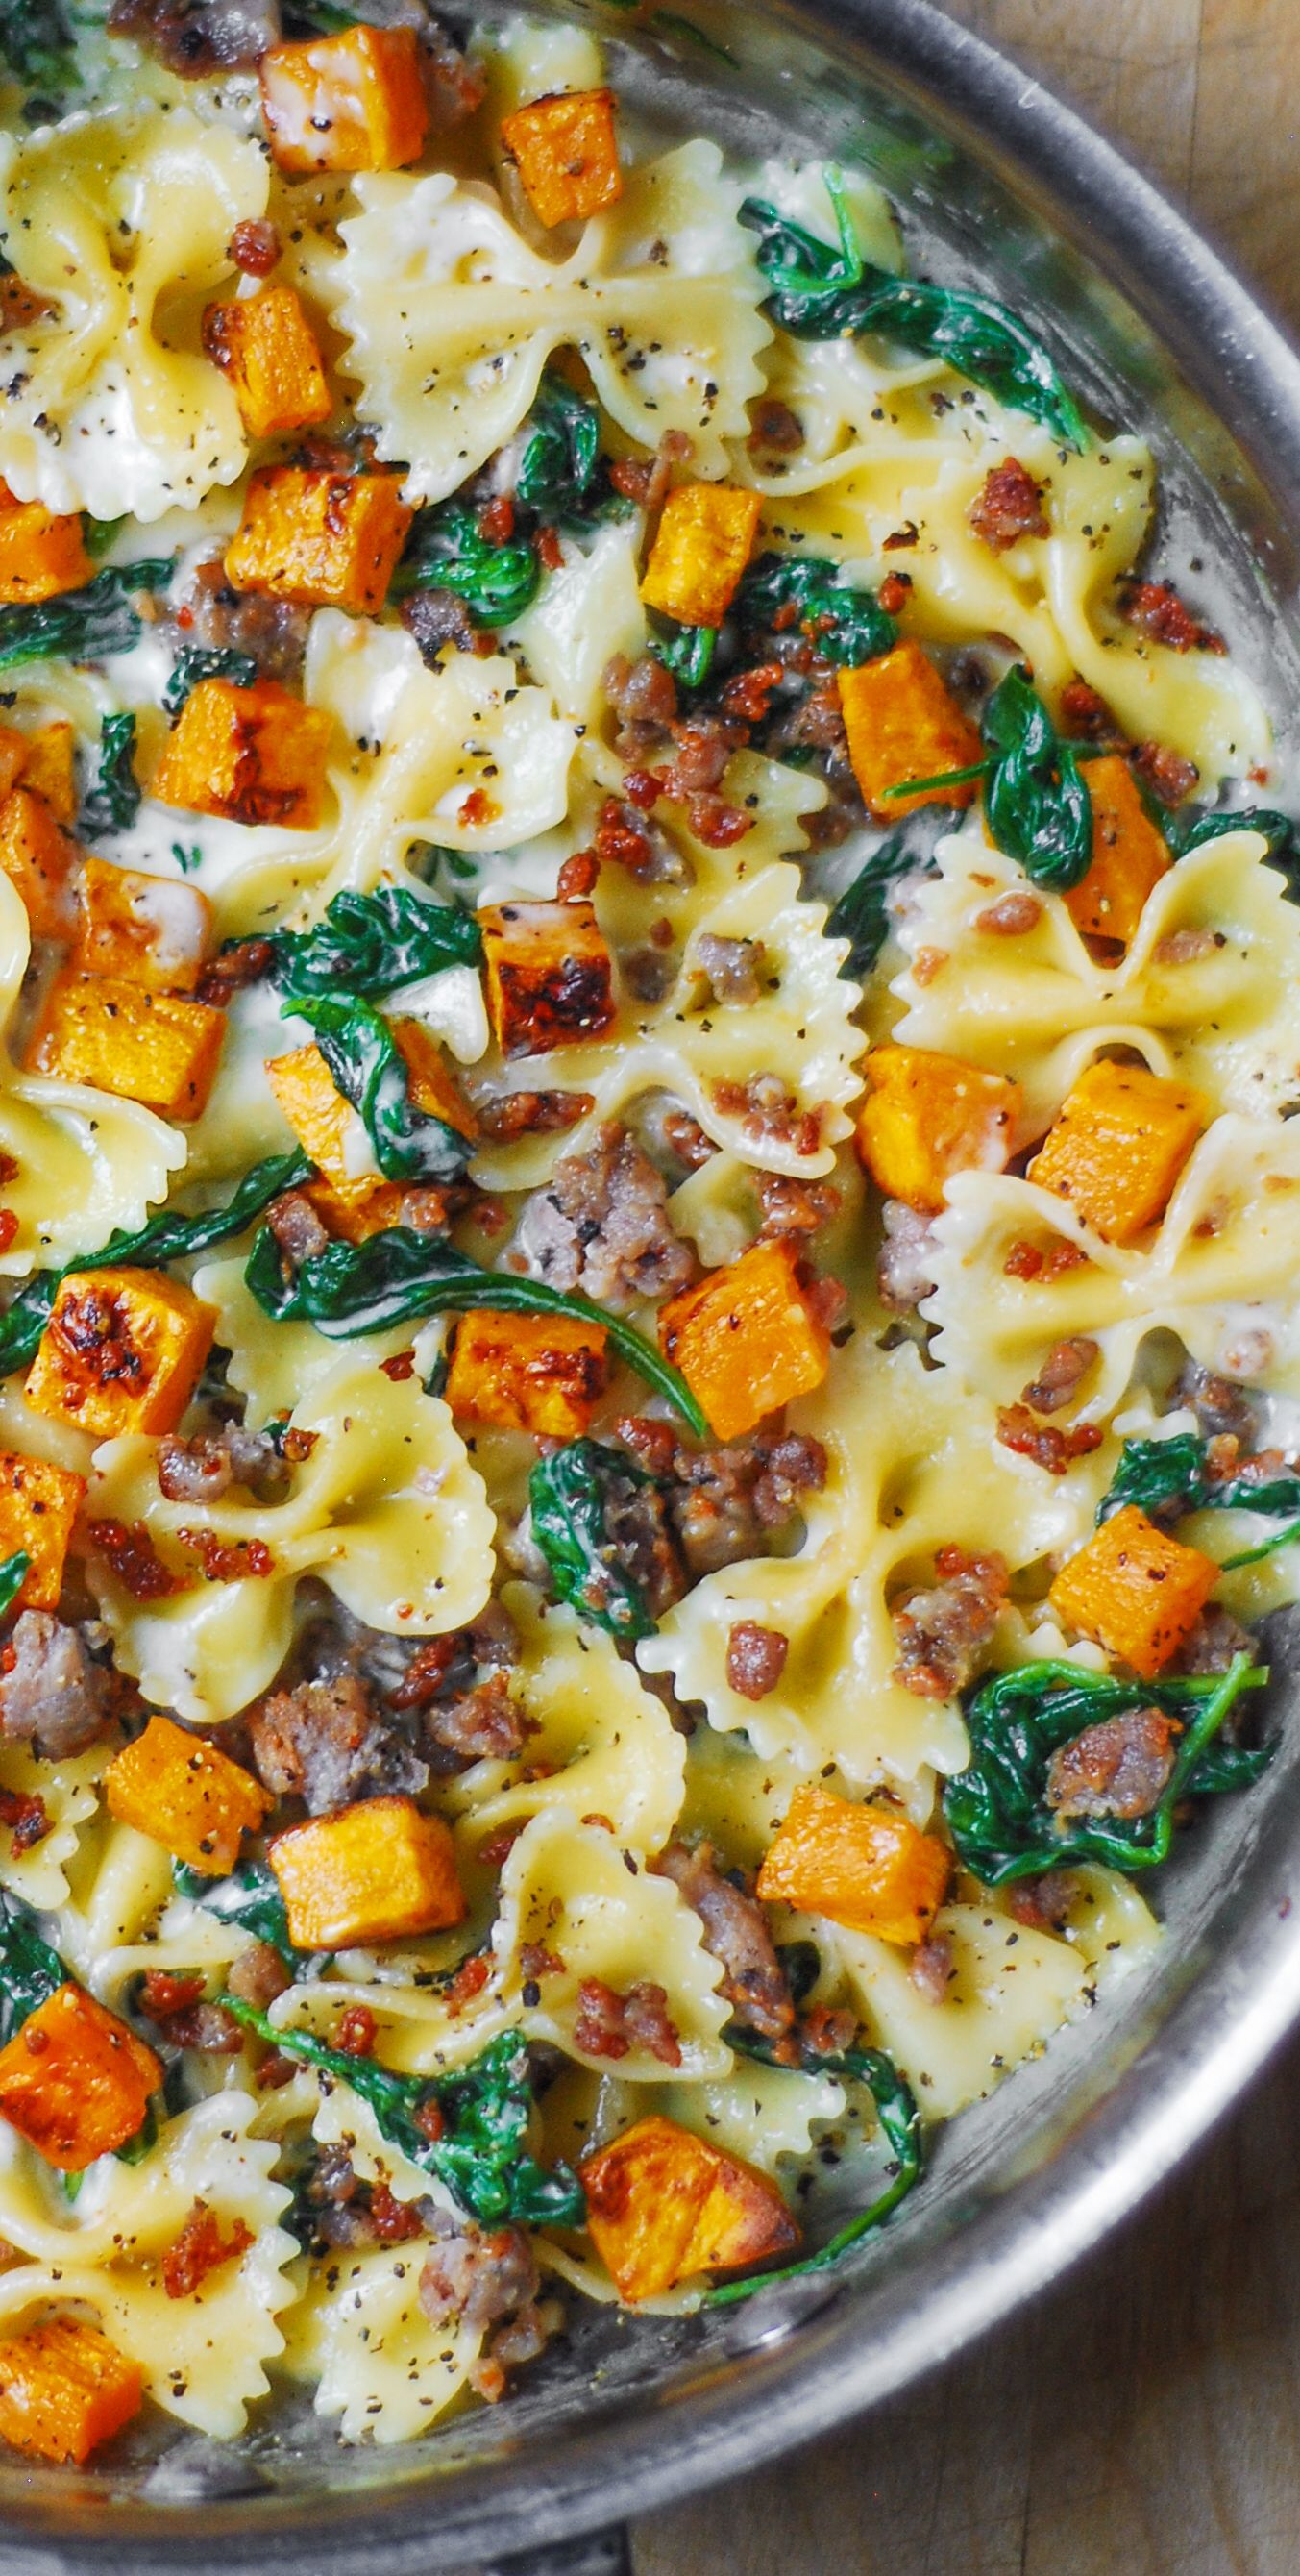 Creamy Butternut Squash Pasta with Sausage and Spi